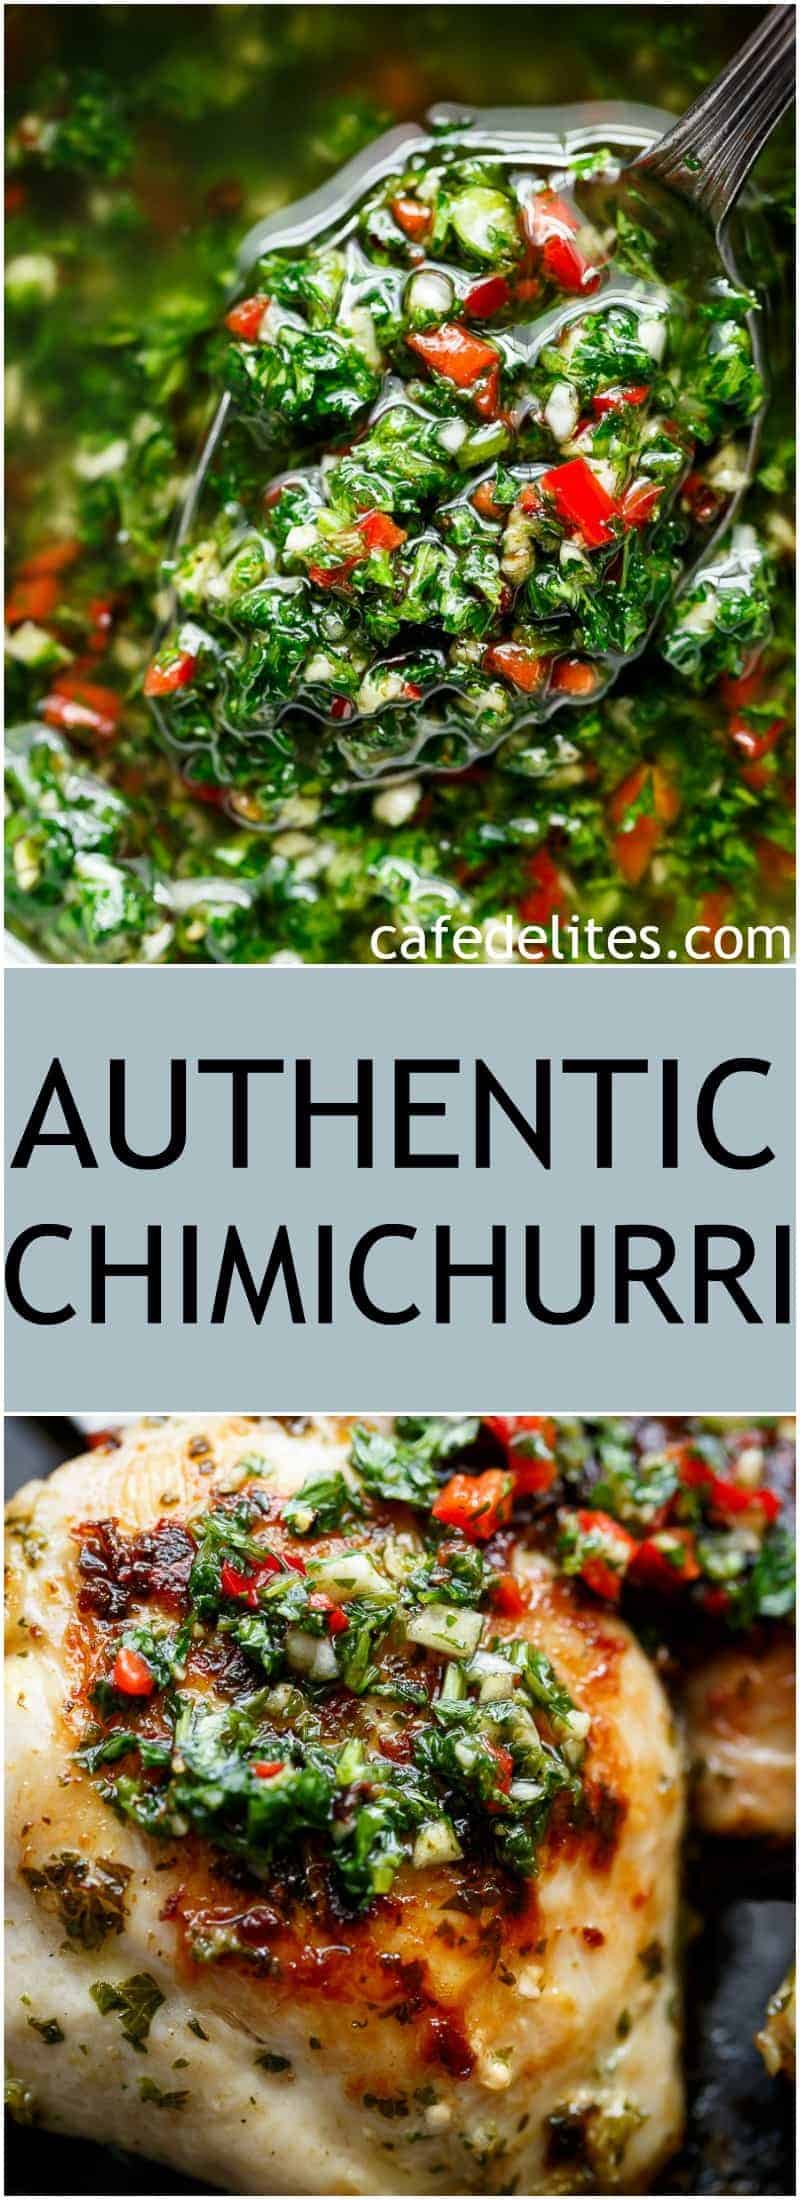 Authentic Chimichurri (Uruguay & Argentina) - Cafe Delites